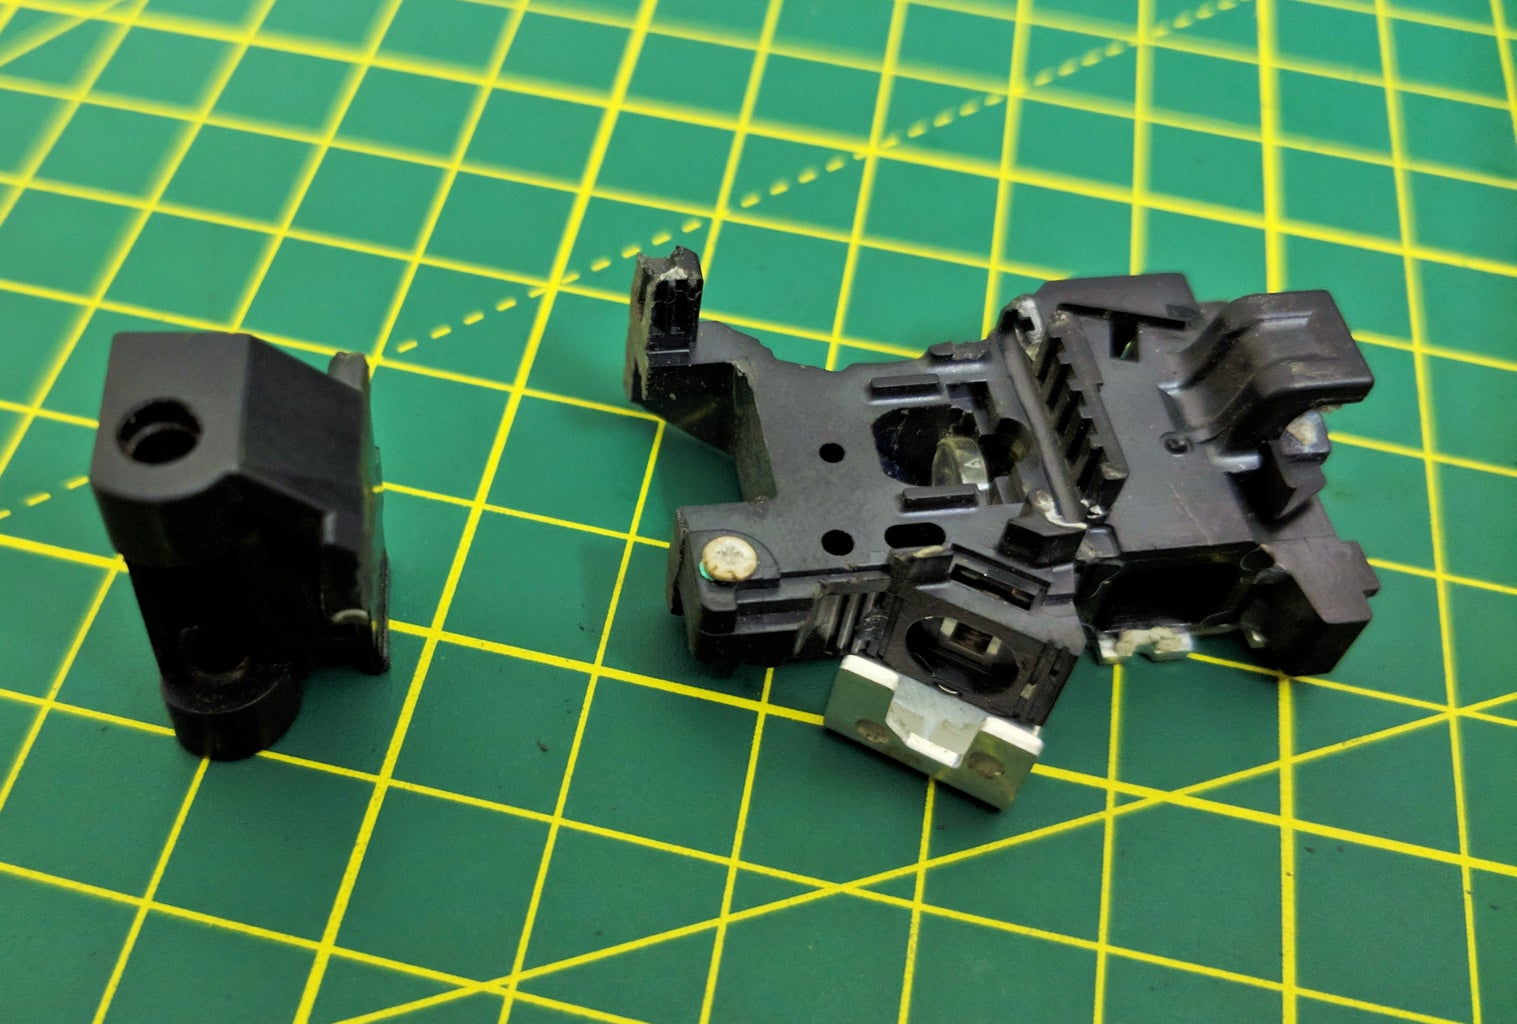 Assembling the Slider Rails for the X and Y-Axis